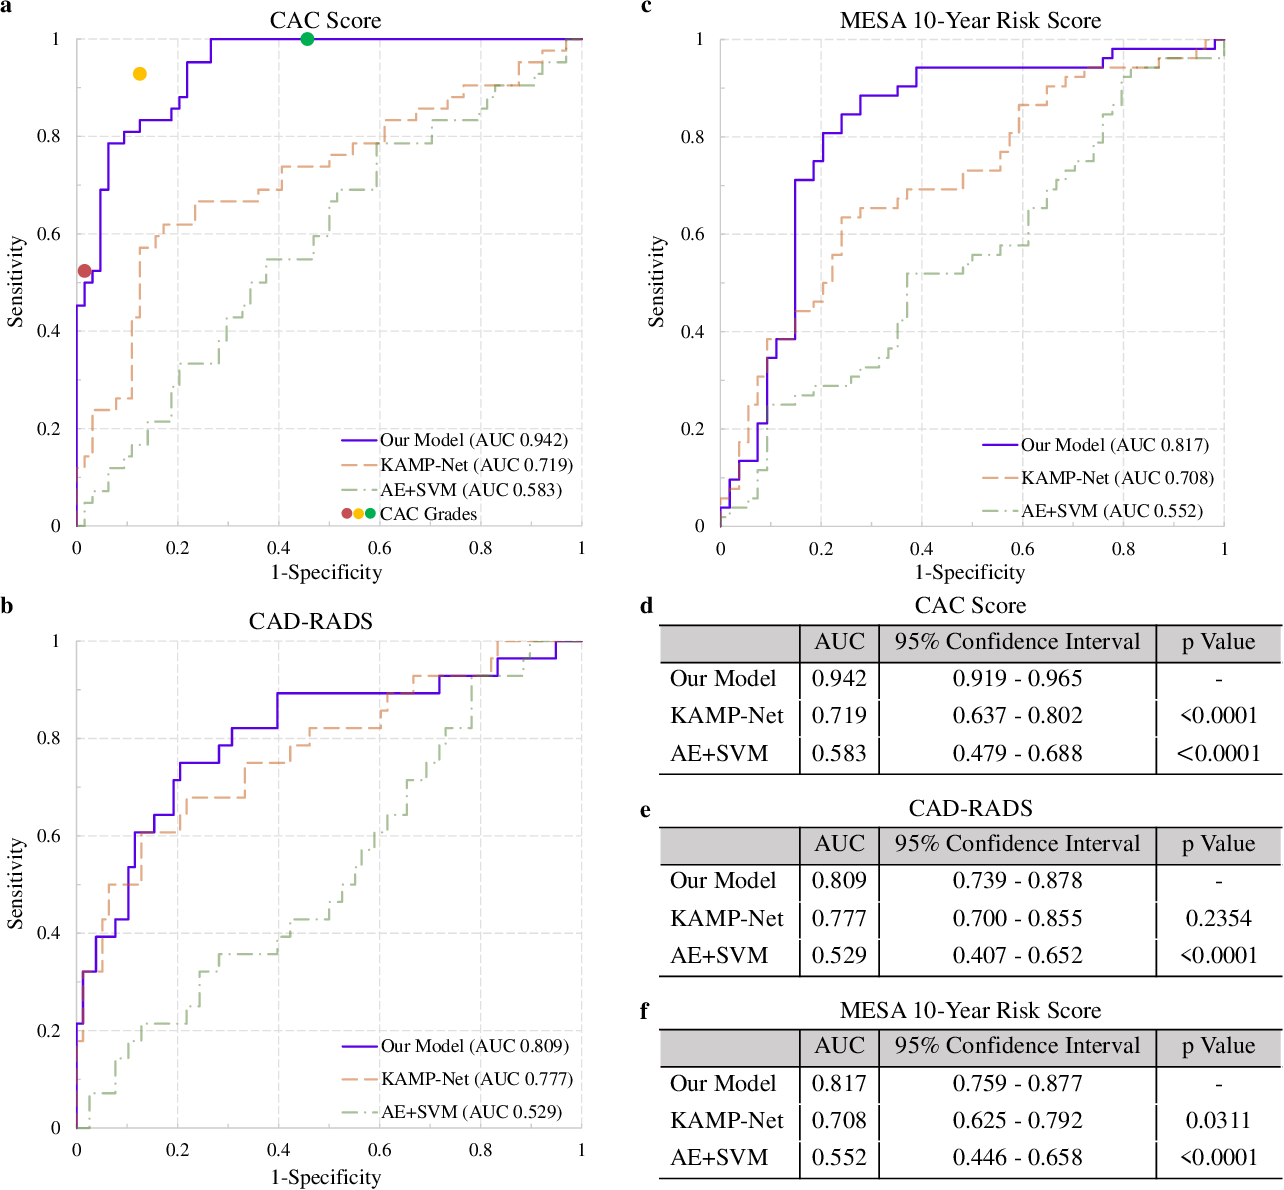 Figure 4 for Deep Learning Predicts Cardiovascular Disease Risks from Lung Cancer Screening Low Dose Computed Tomography